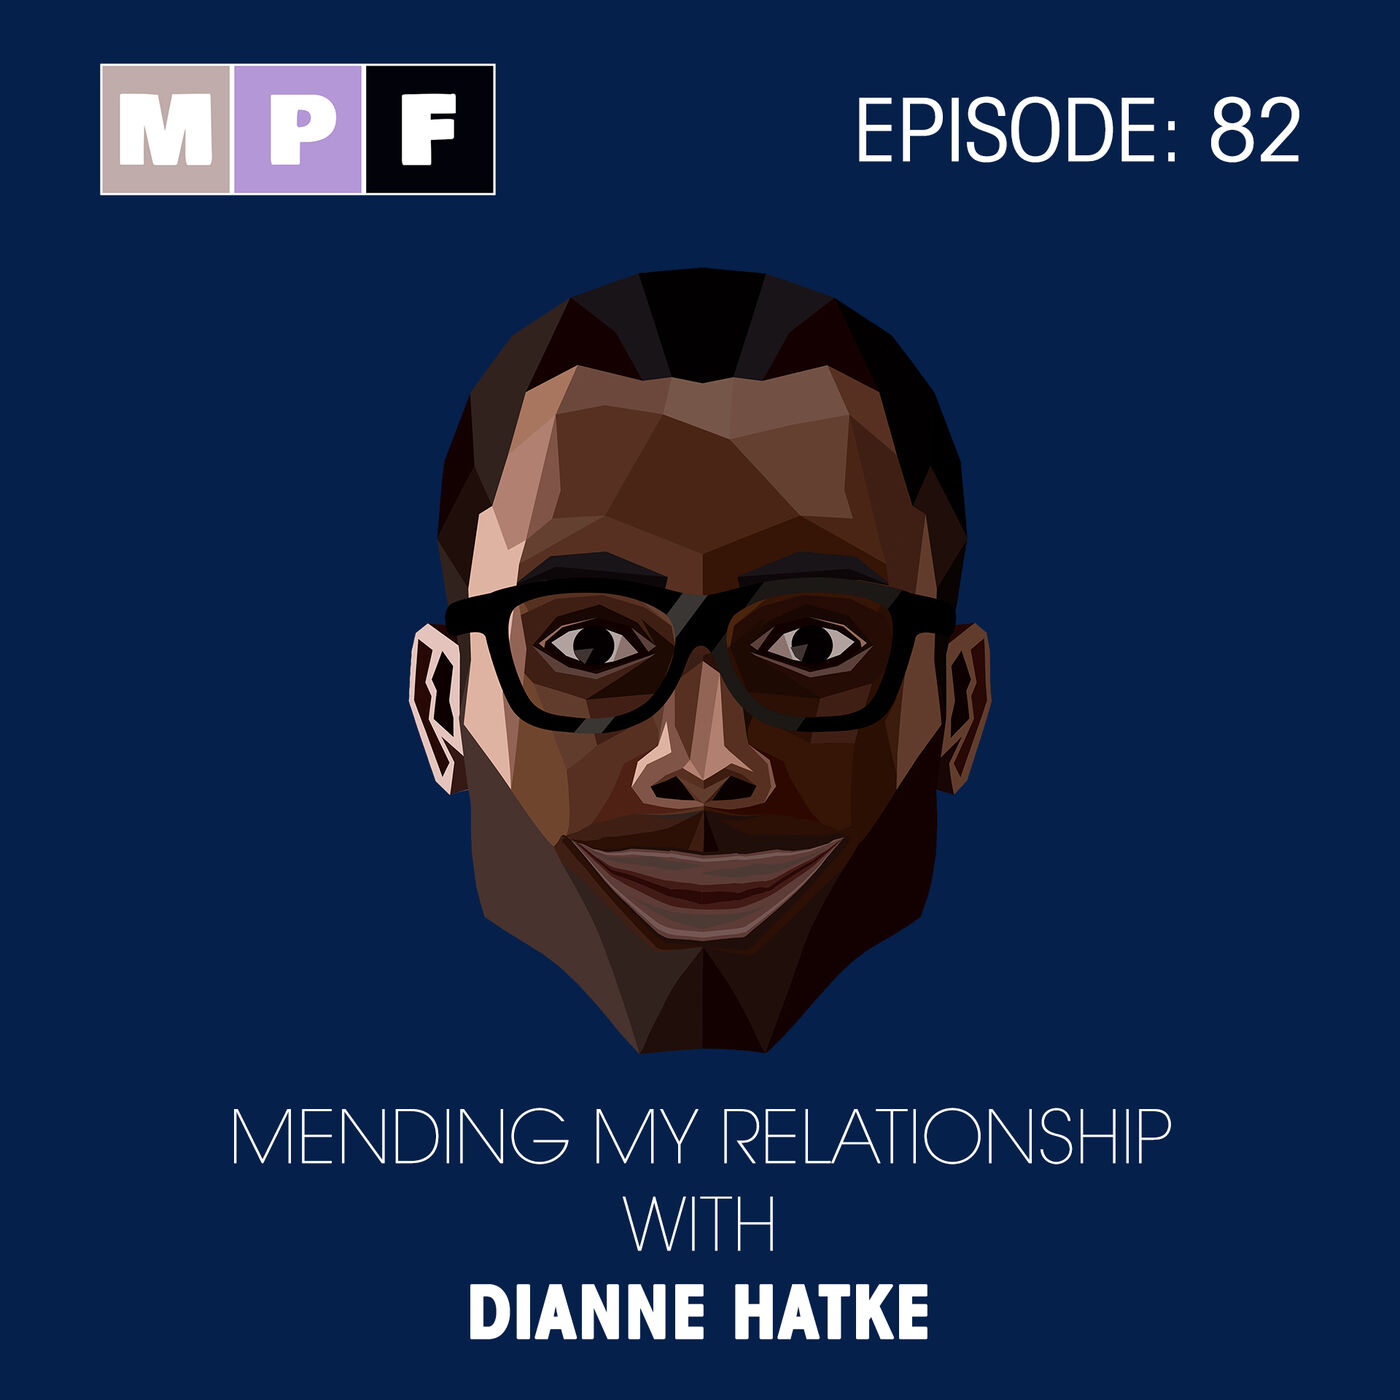 Mending My Relationship with Dianne Hatke